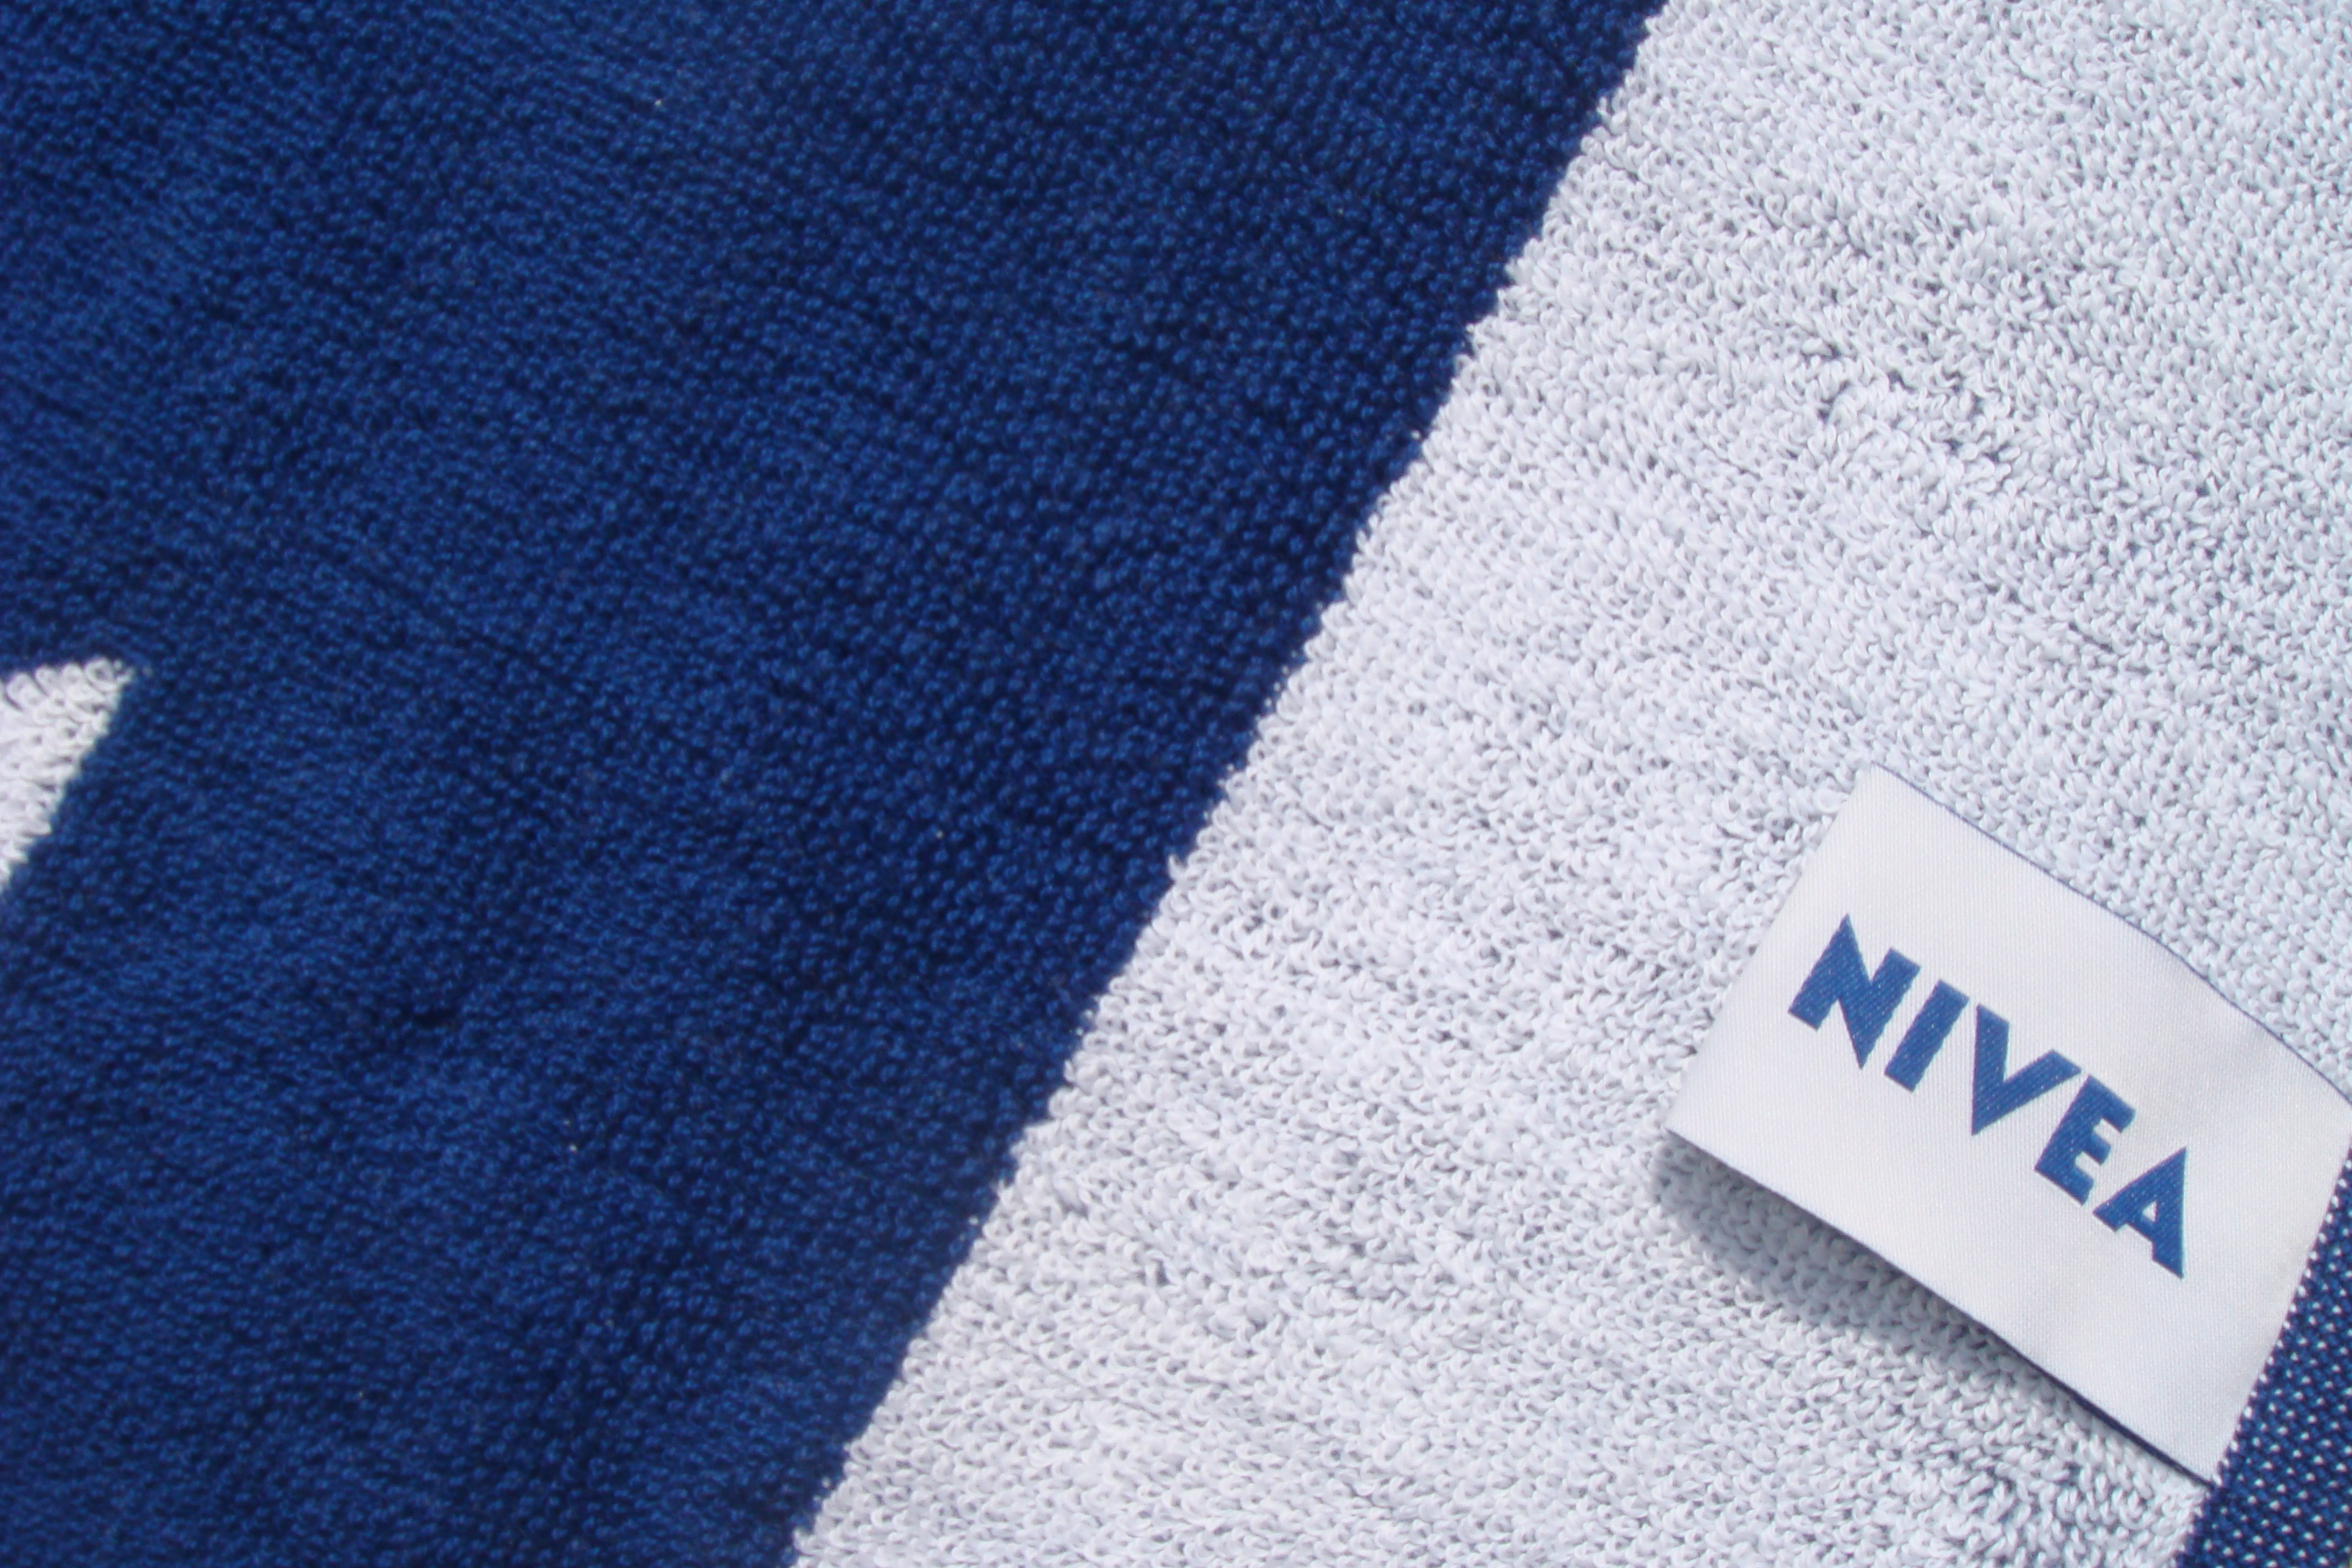 2 colour woven towel + label.